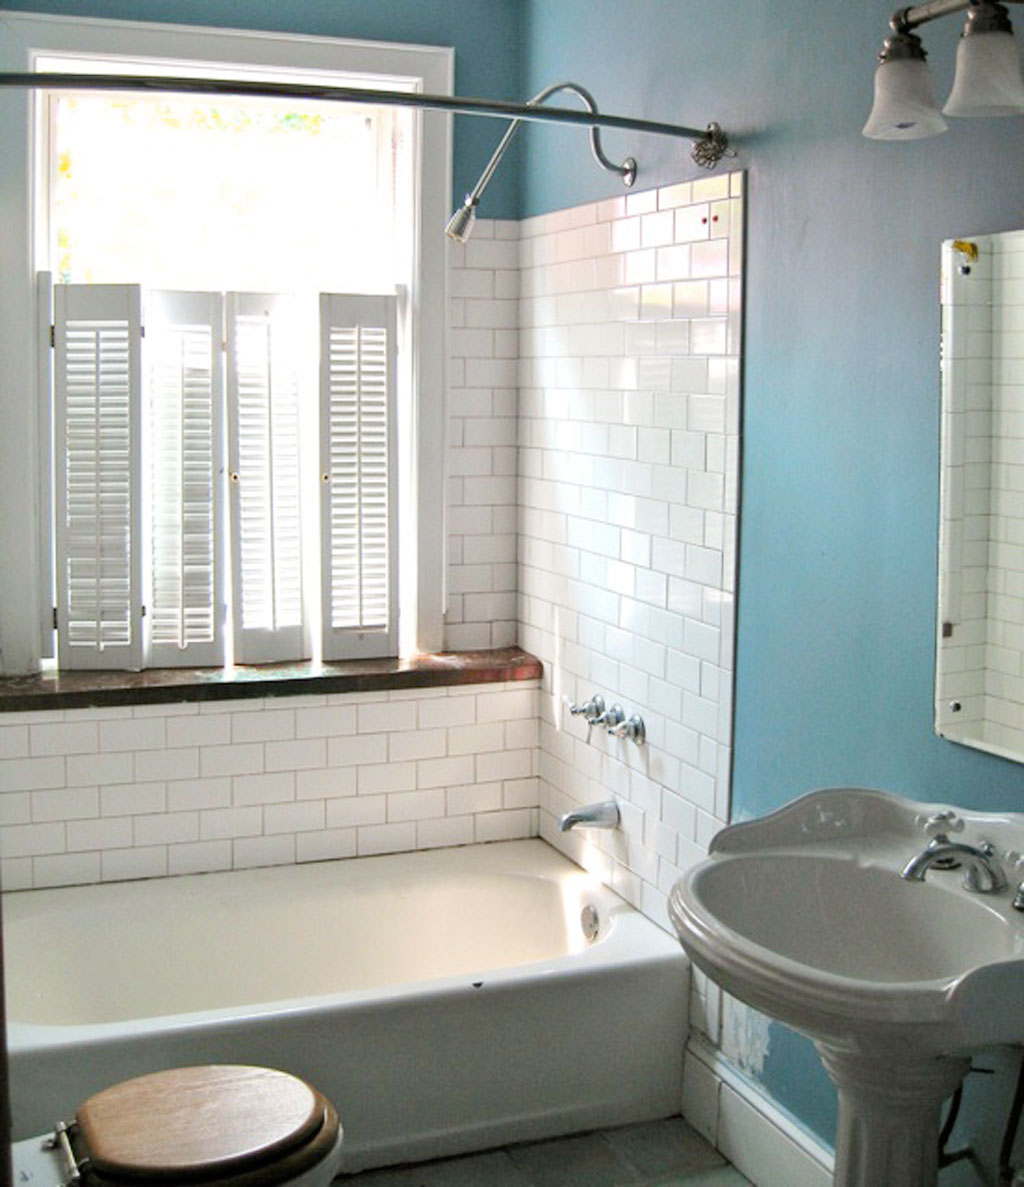 Get Great Air Circulation with Small Bathroom Windows | EwdInteriors